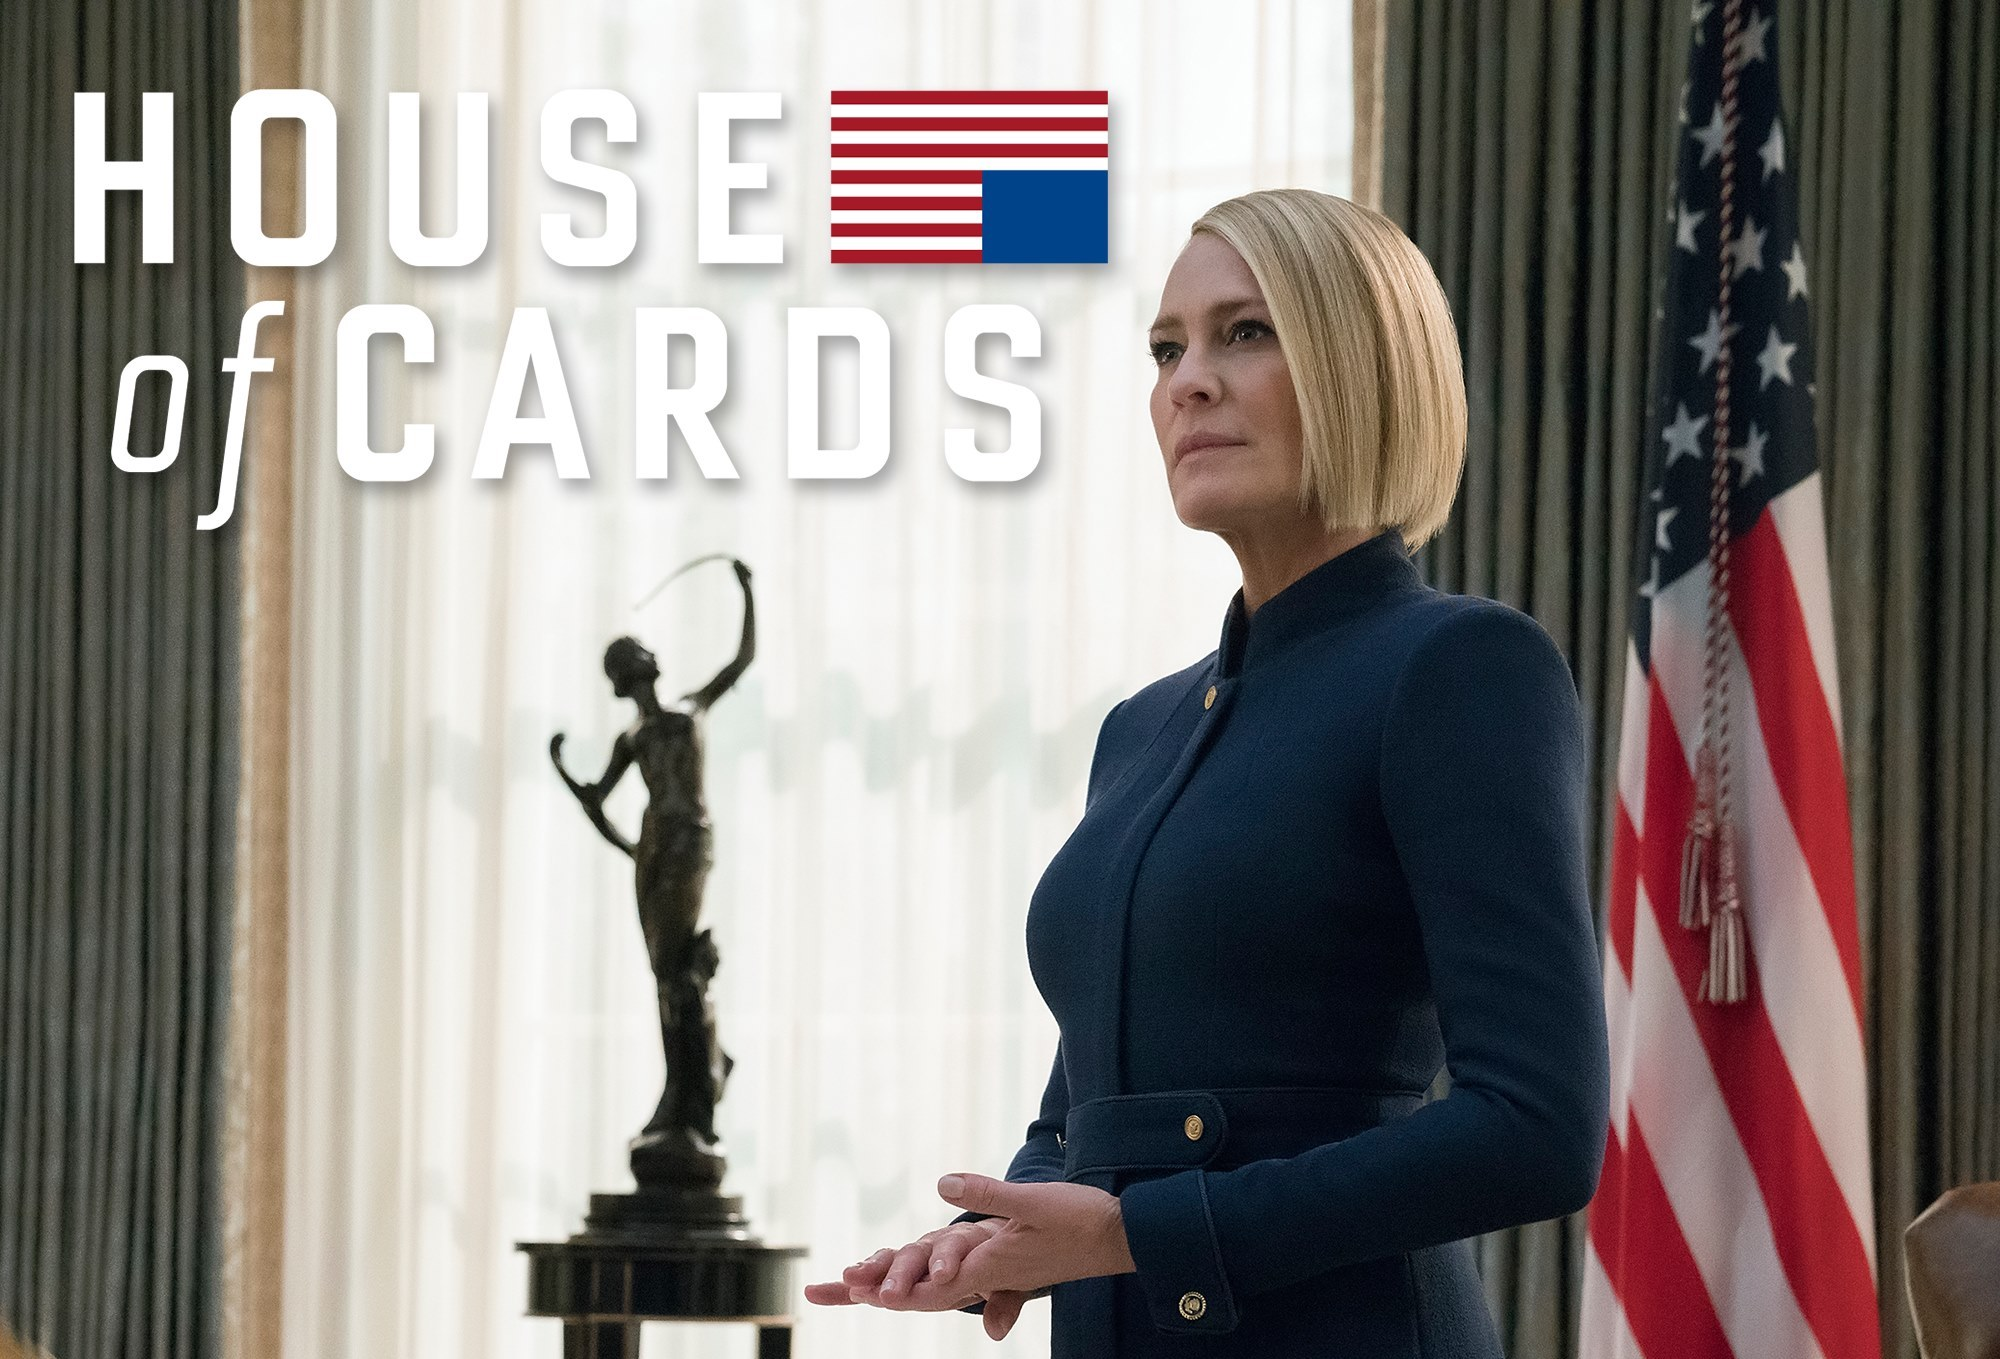 House Of Cards Sky Atlantic